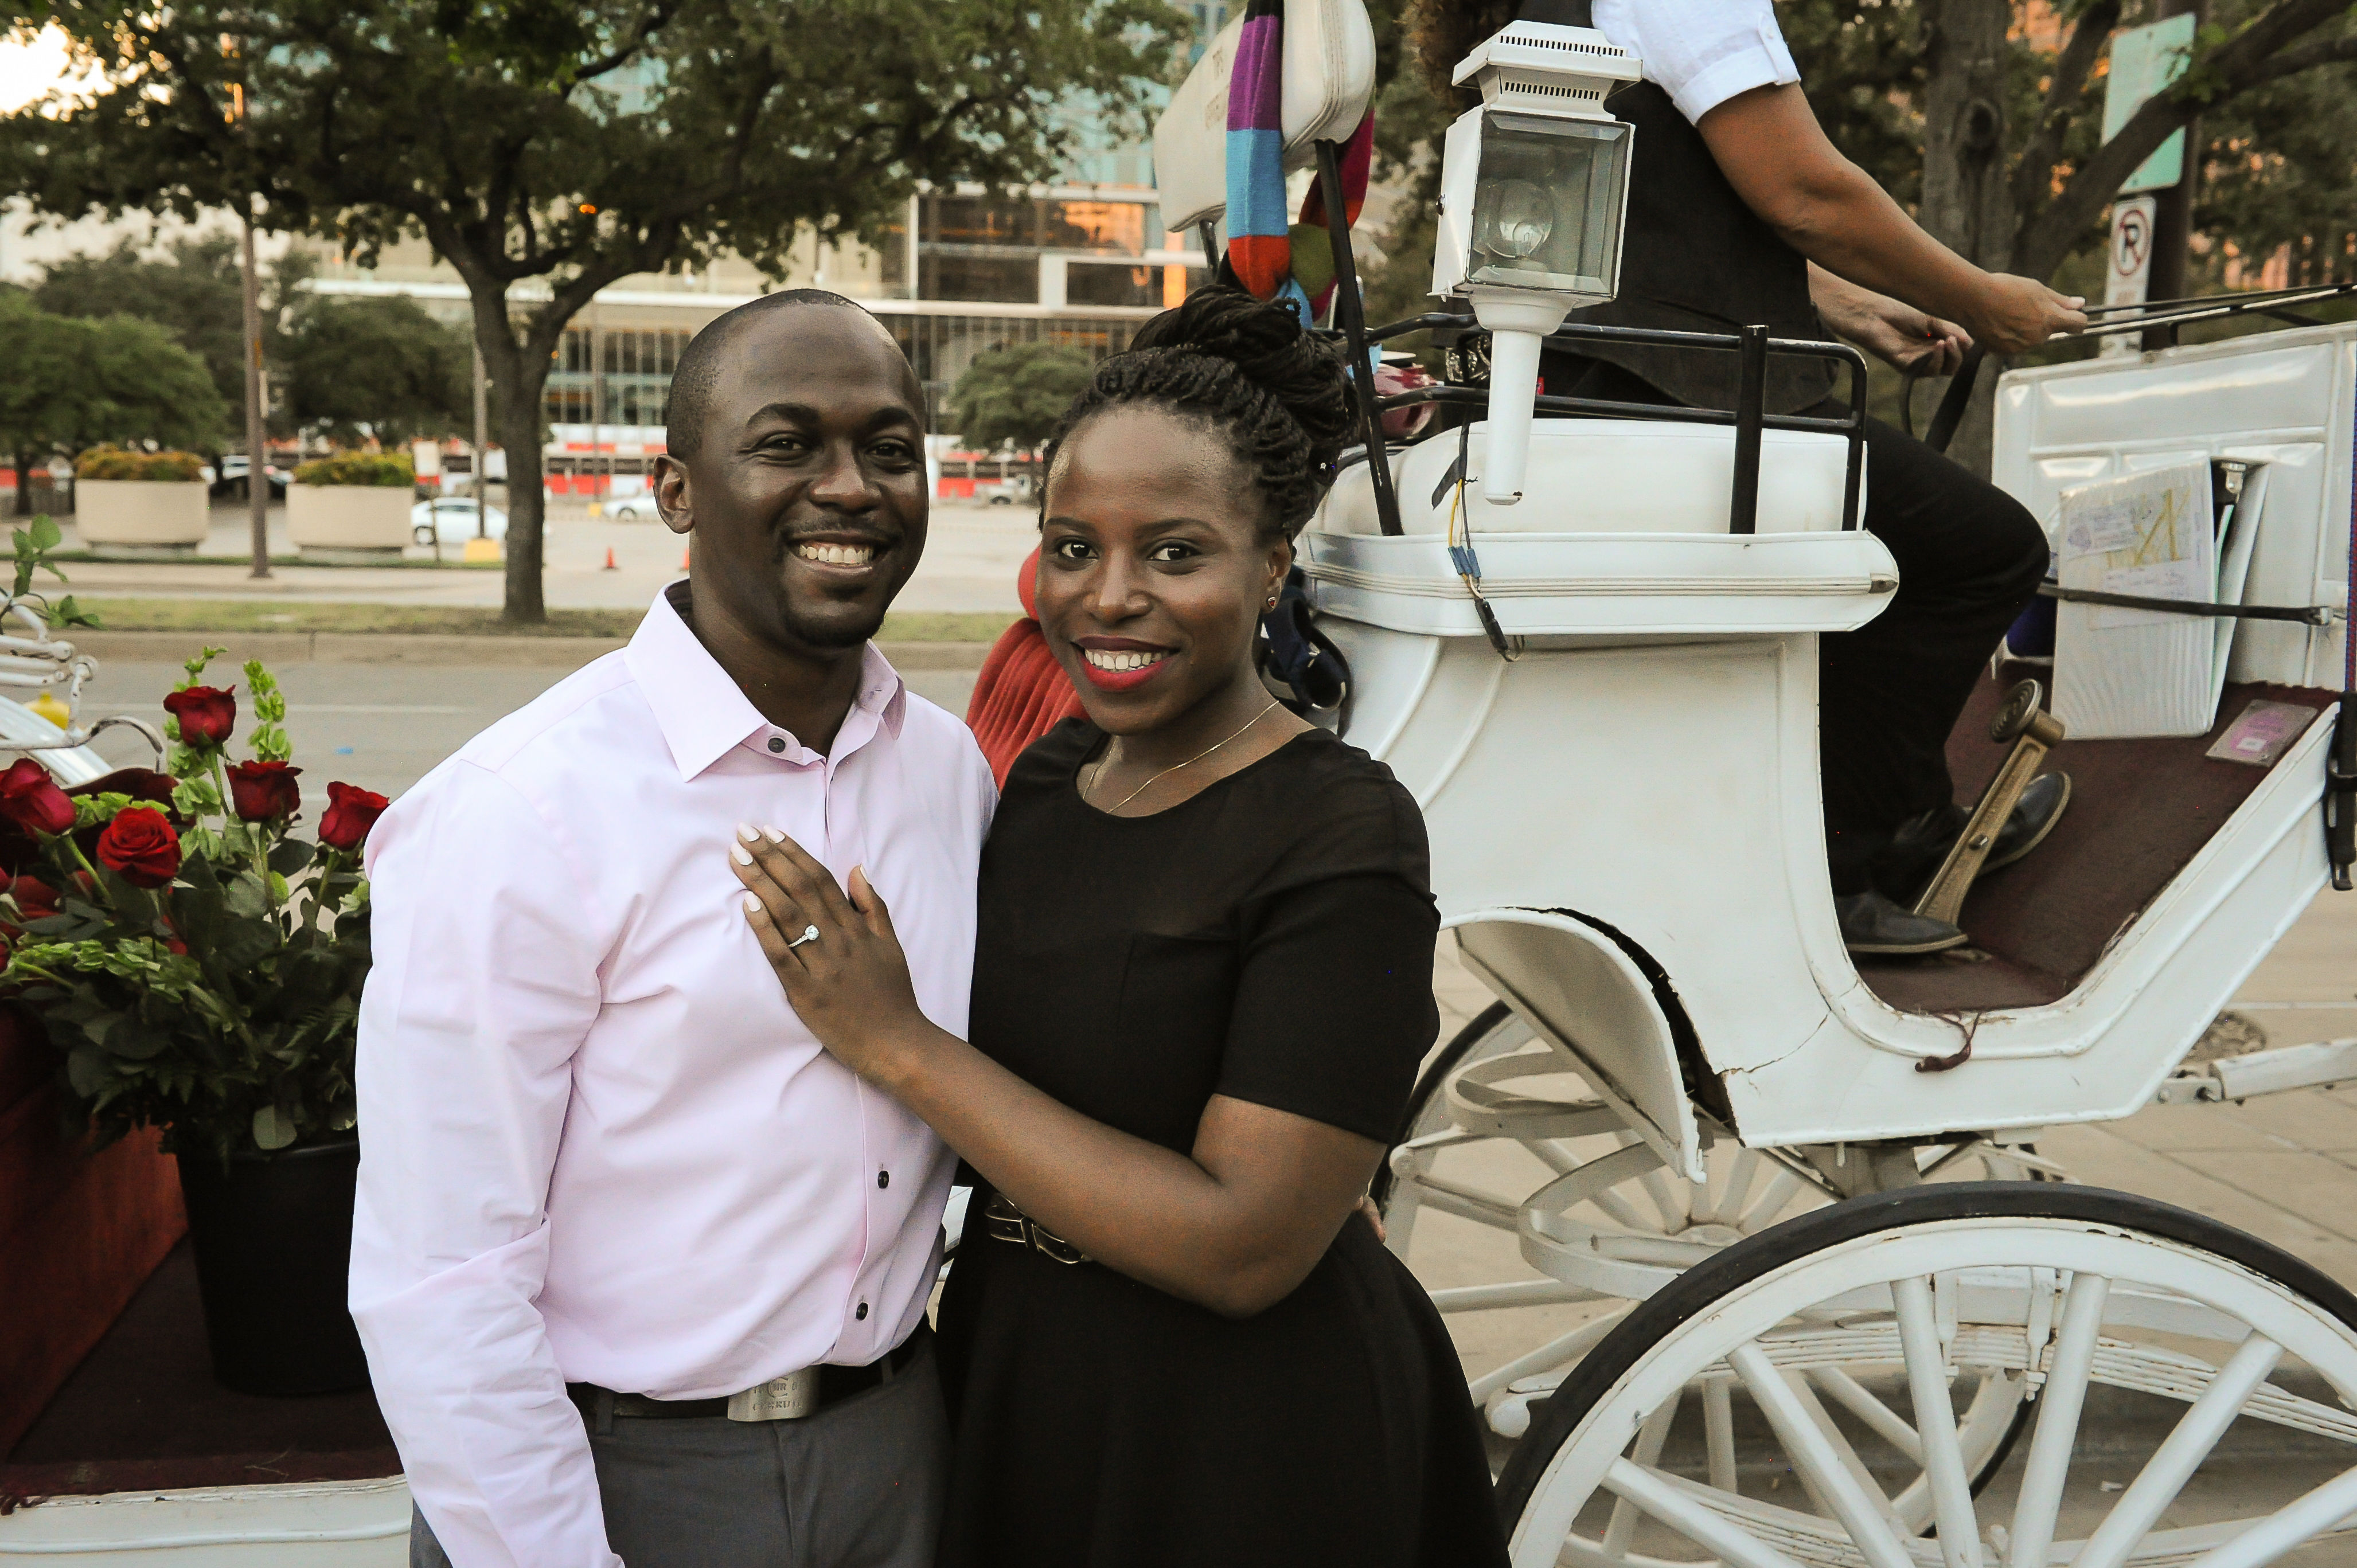 Horse and Carriage Proposal